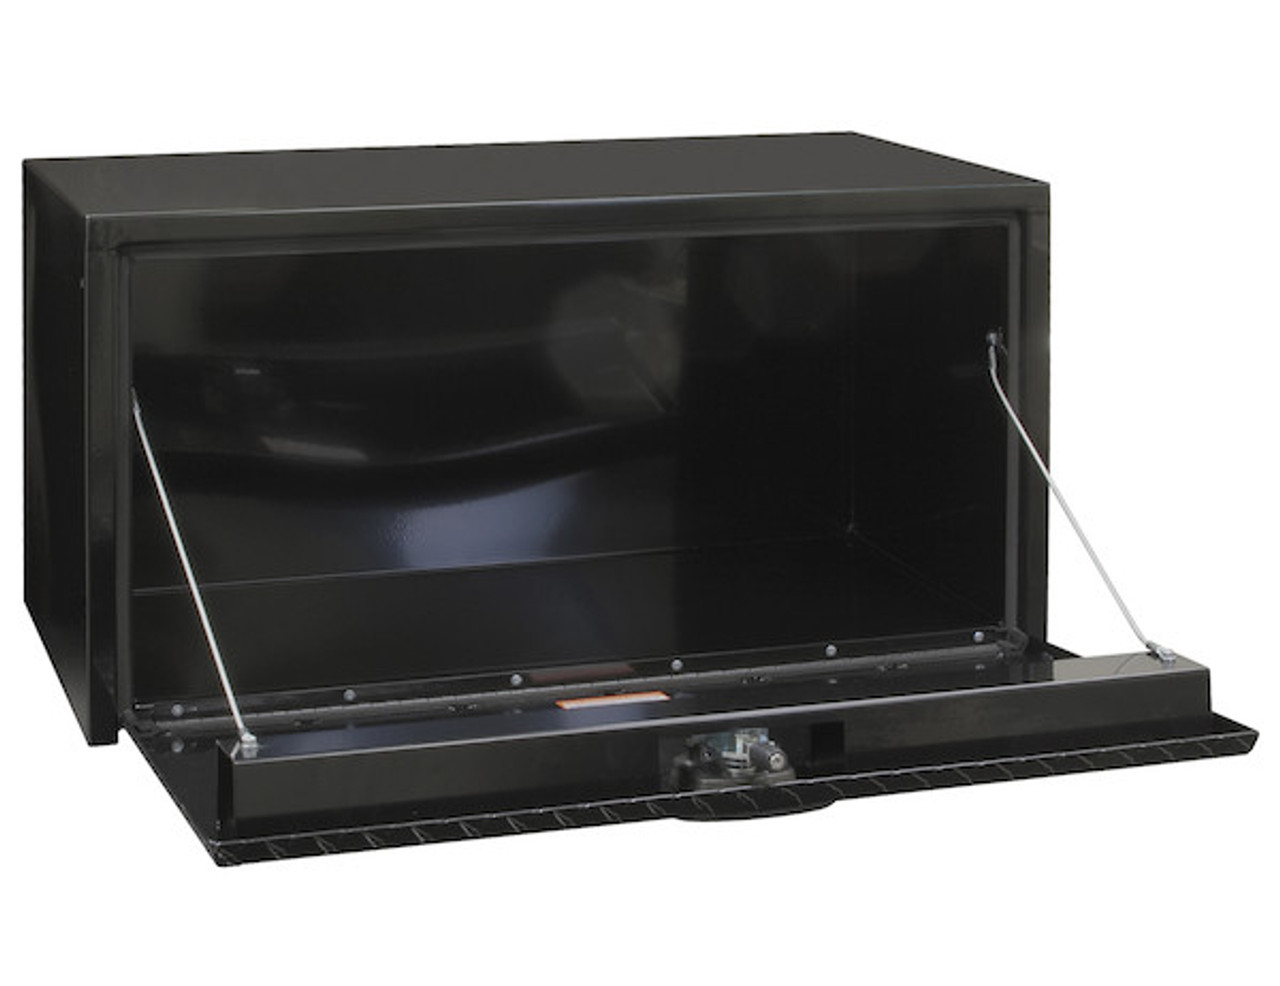 "1702505 BUYERS PRODUCTS BLACK STEEL UNDERBODY TRUCK TOOLBOX WITH ALUMINUM DOOR 18""HX18""DX36""W"